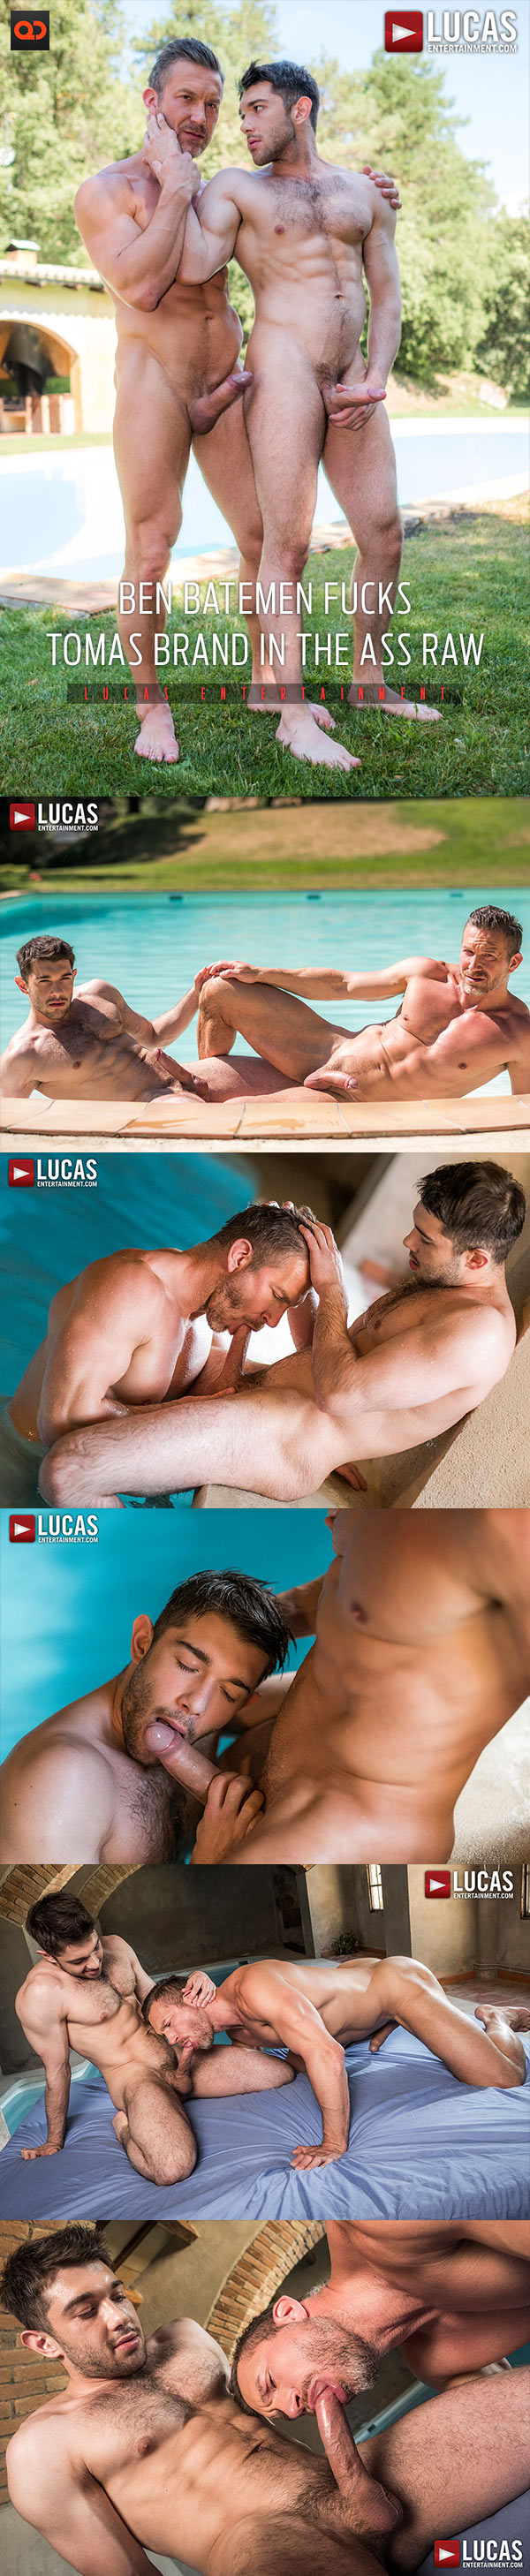 Lucas Entertainment: Tomas Brand and Ben Batemen Flip Fuck Bareback